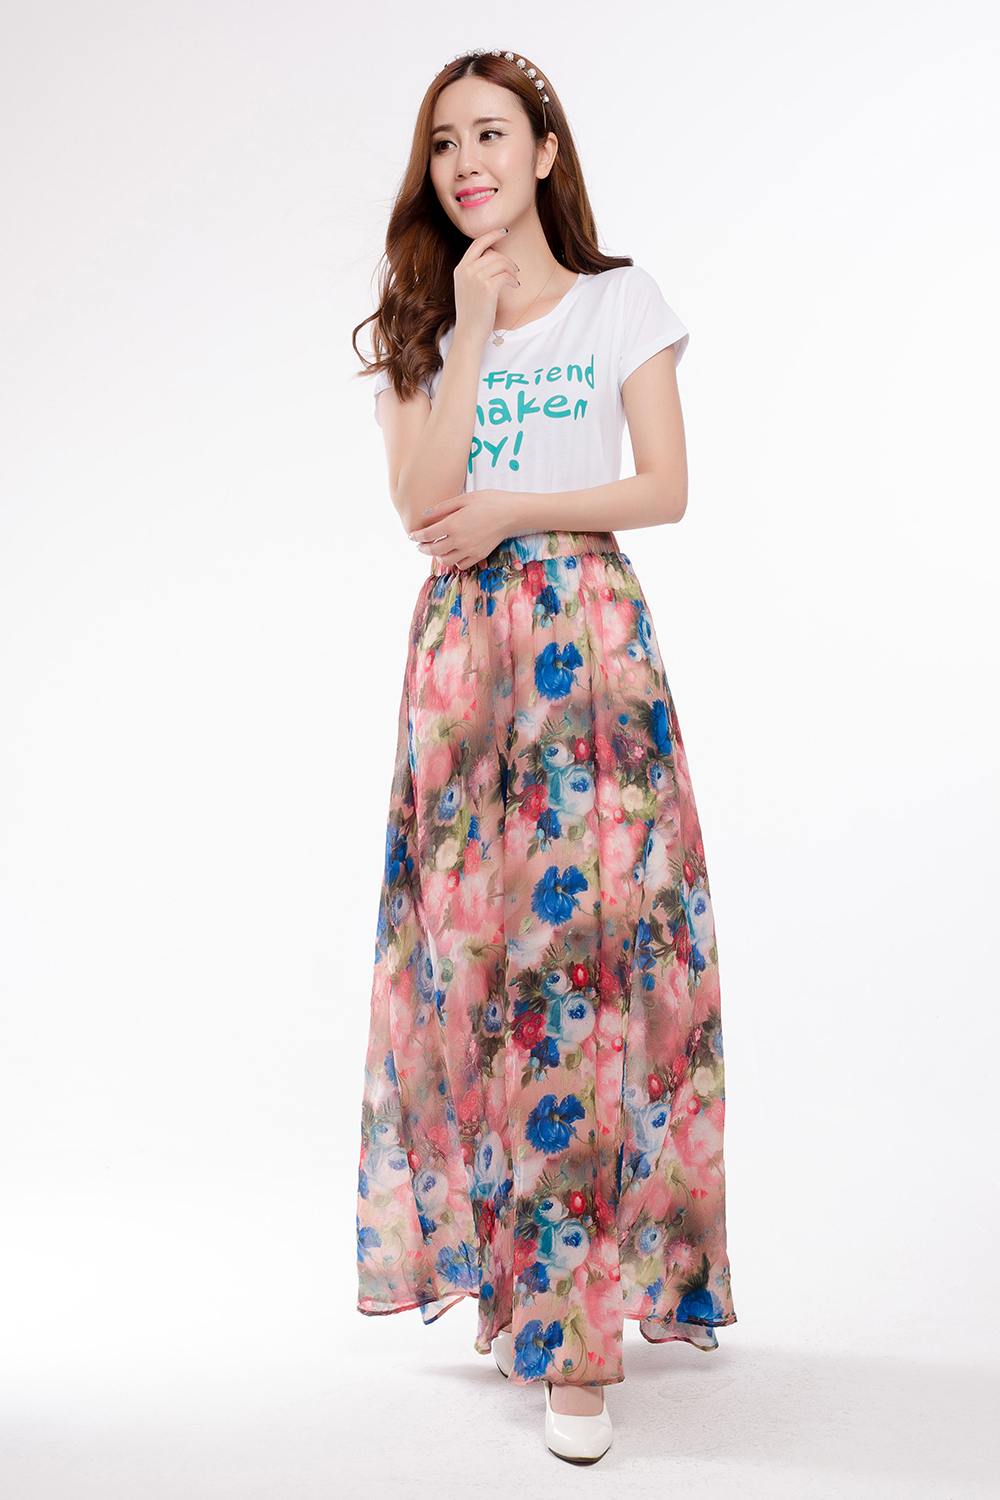 Aliexpress.com : Buy Bohemia Women Floral Print Maxi Skirts ...